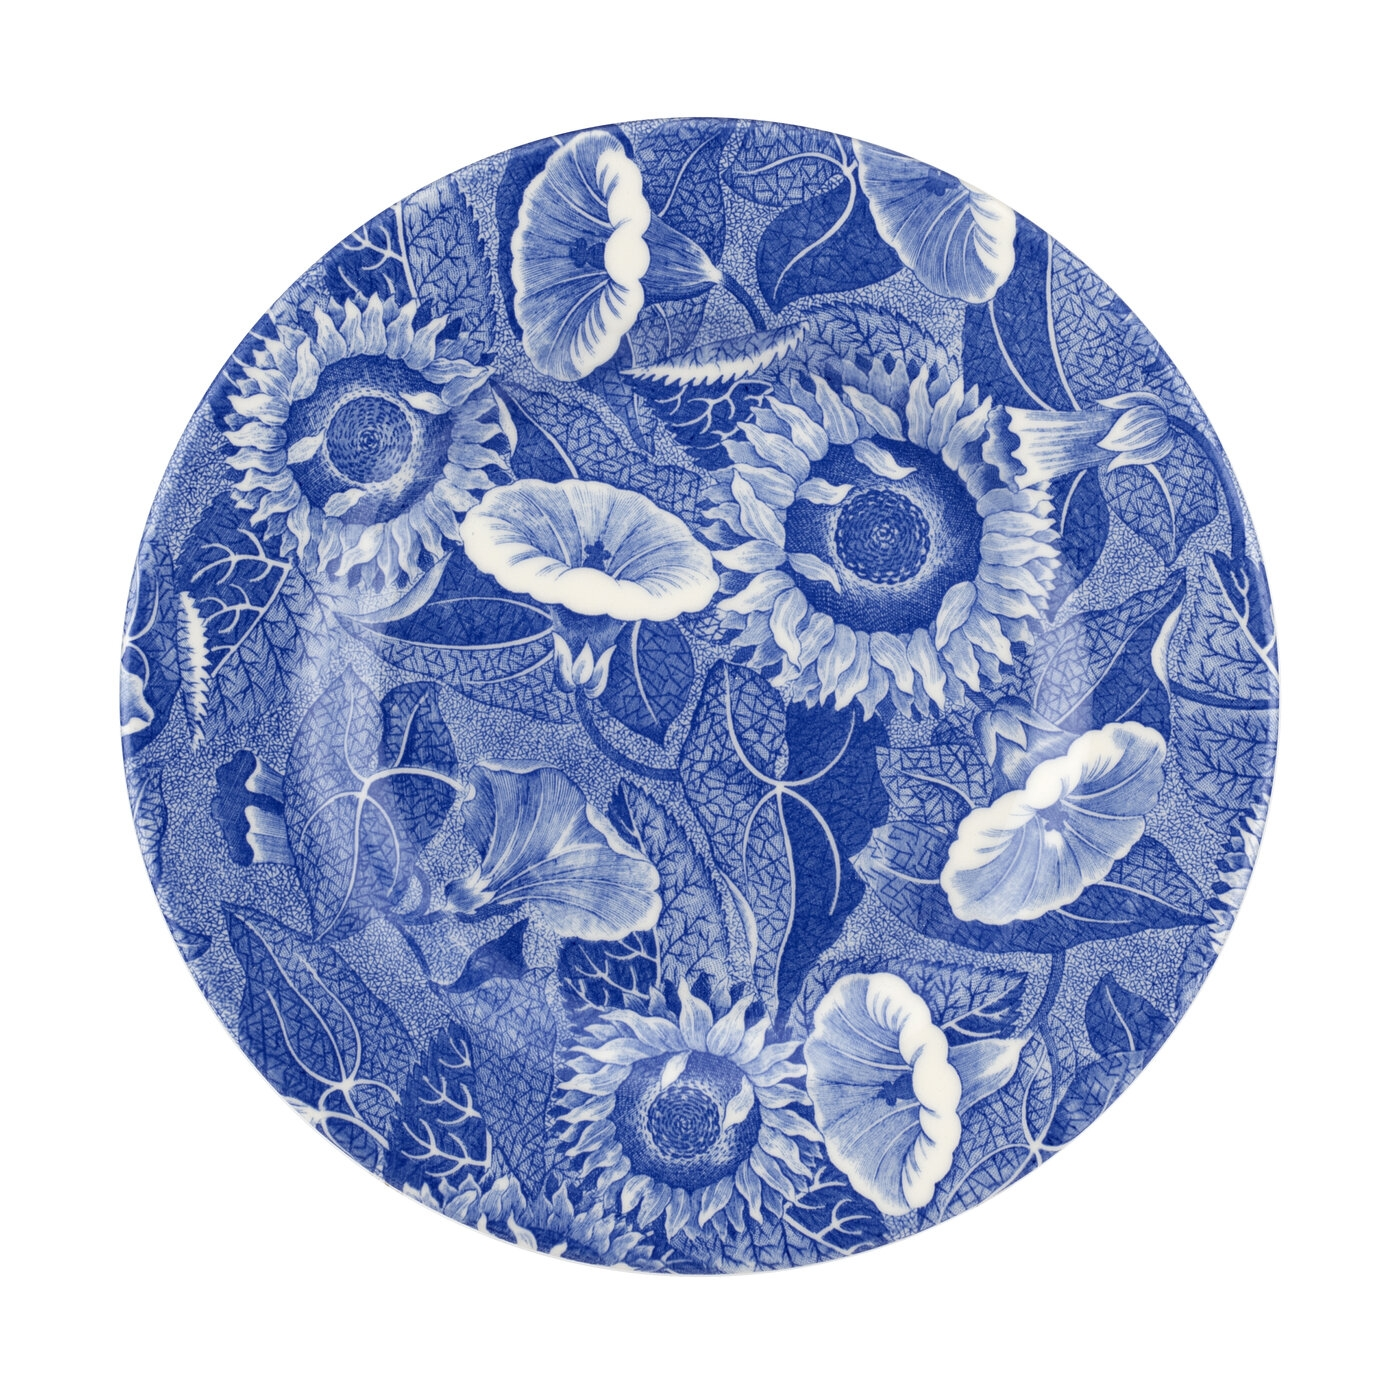 Spode Blue Room Sunflower 8.75 Inch Salad Plate image number 0